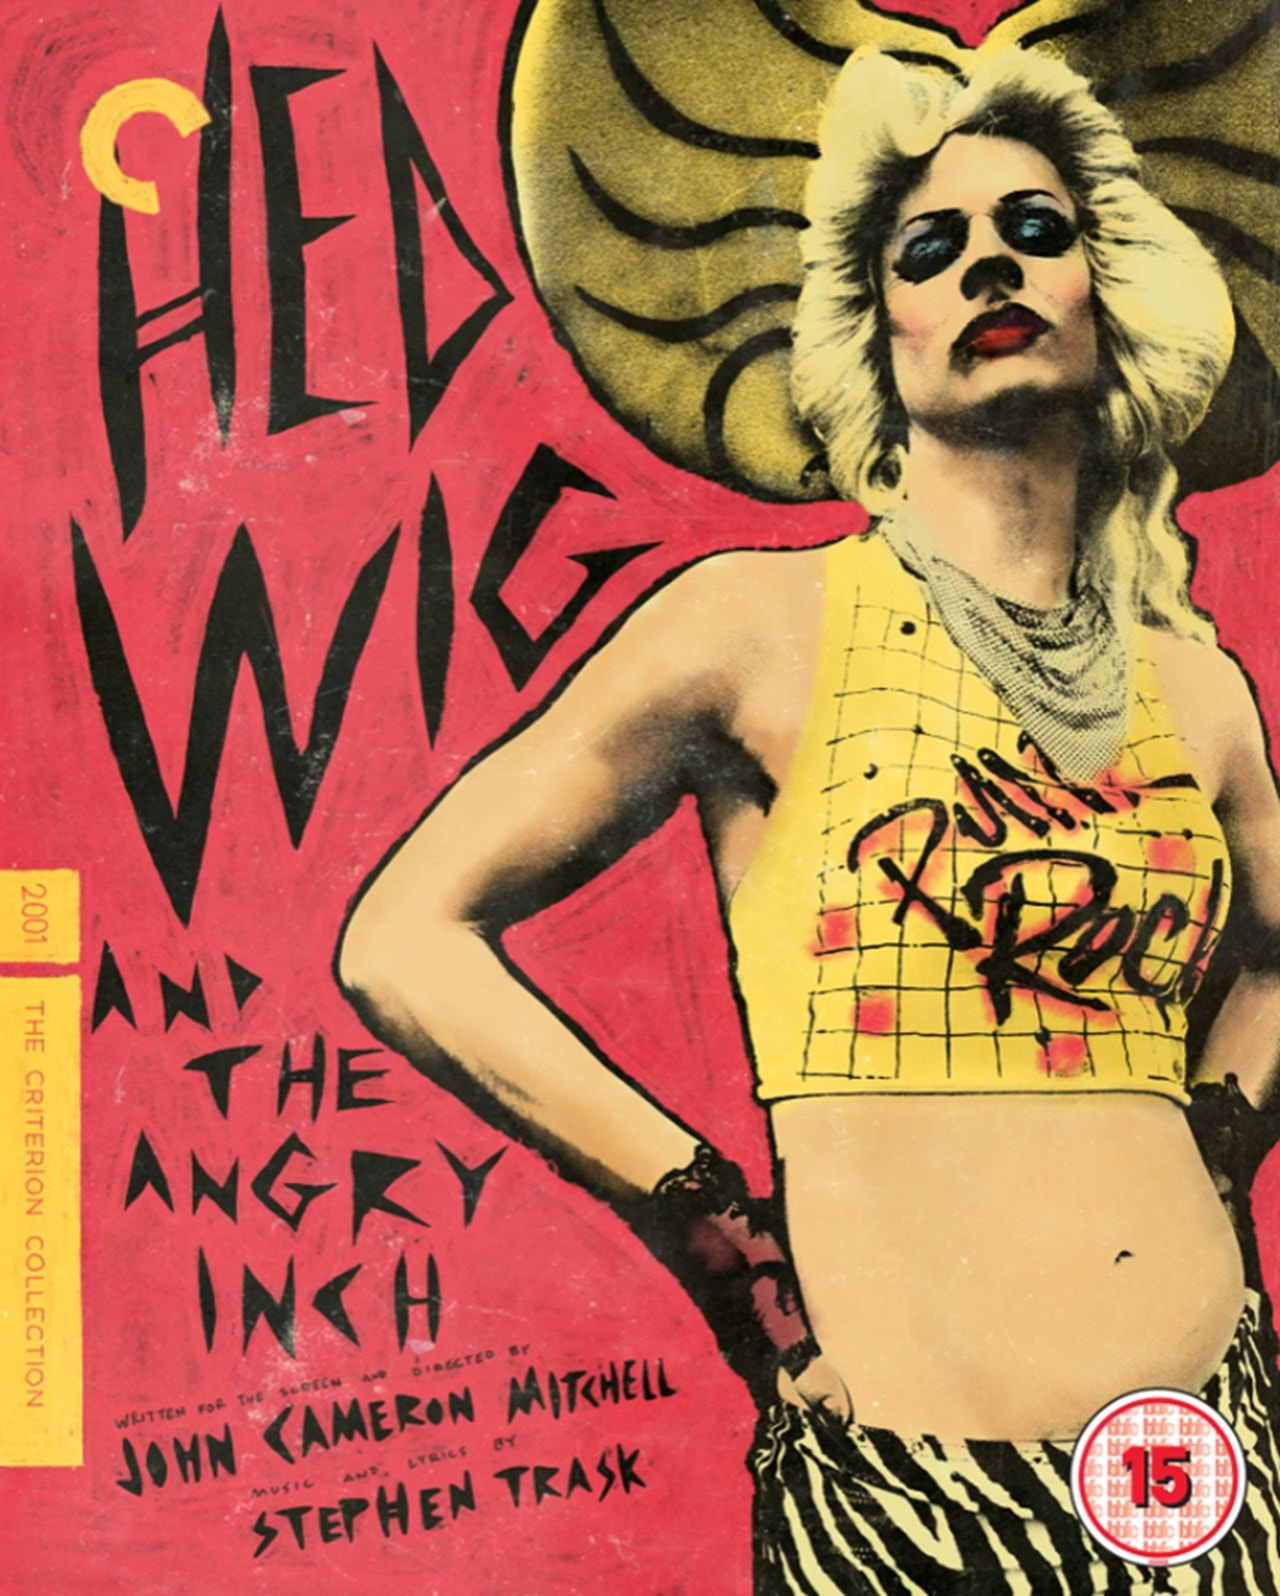 Hedwig and the Angry Inch - The Criterion Collection - 1